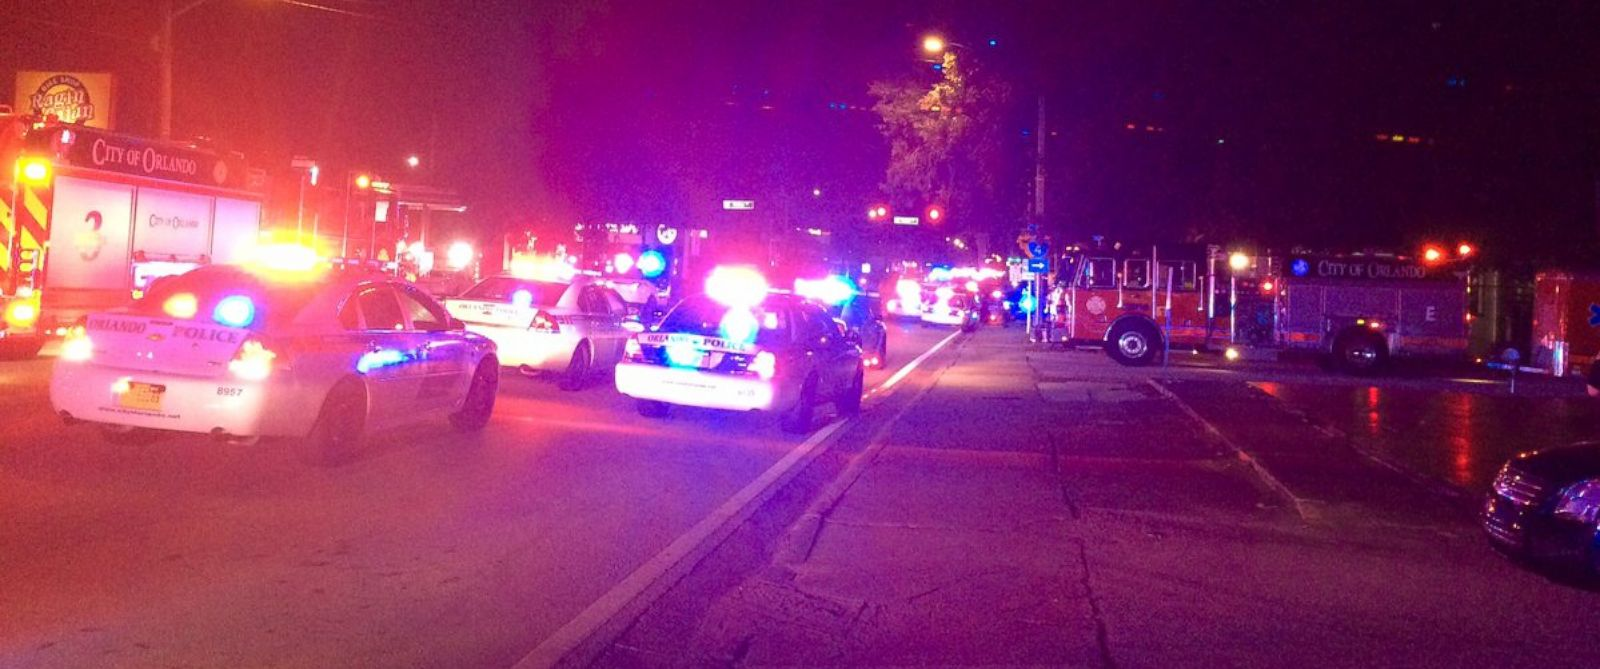 At Least 50 Dead In Orlando Gay Club Shooting Suspect